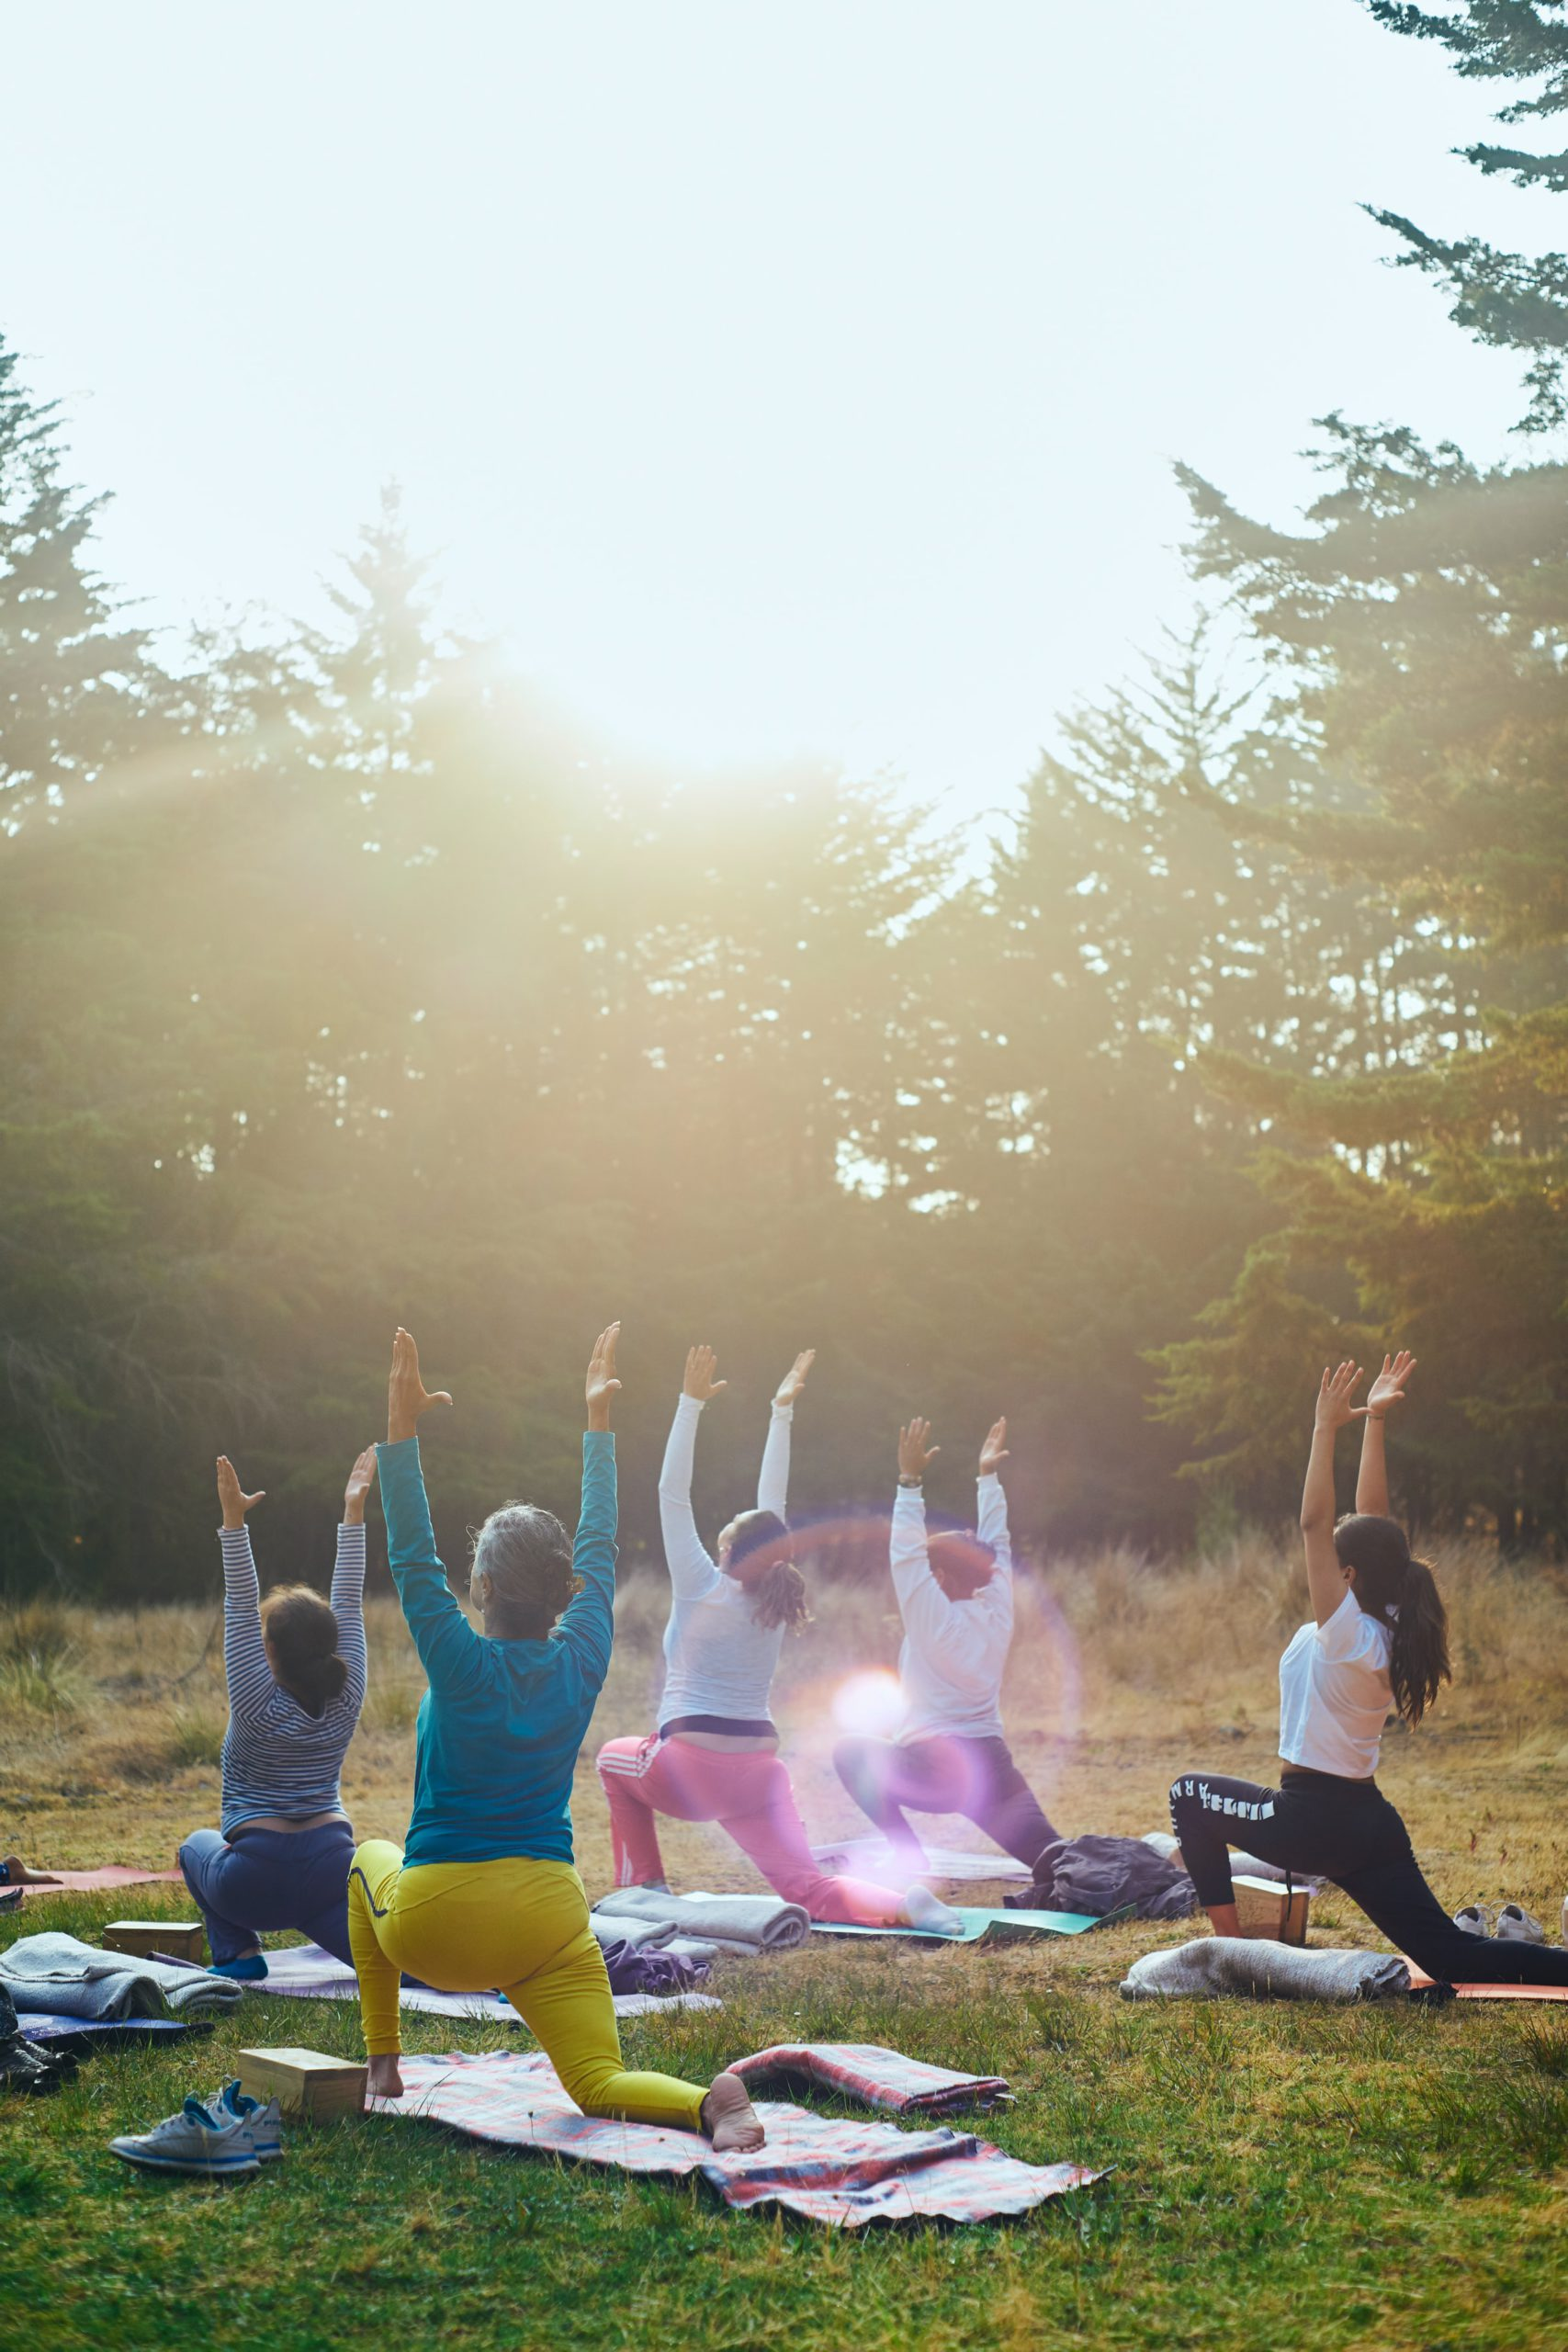 ReShape Life - Yoga Class Outdoors